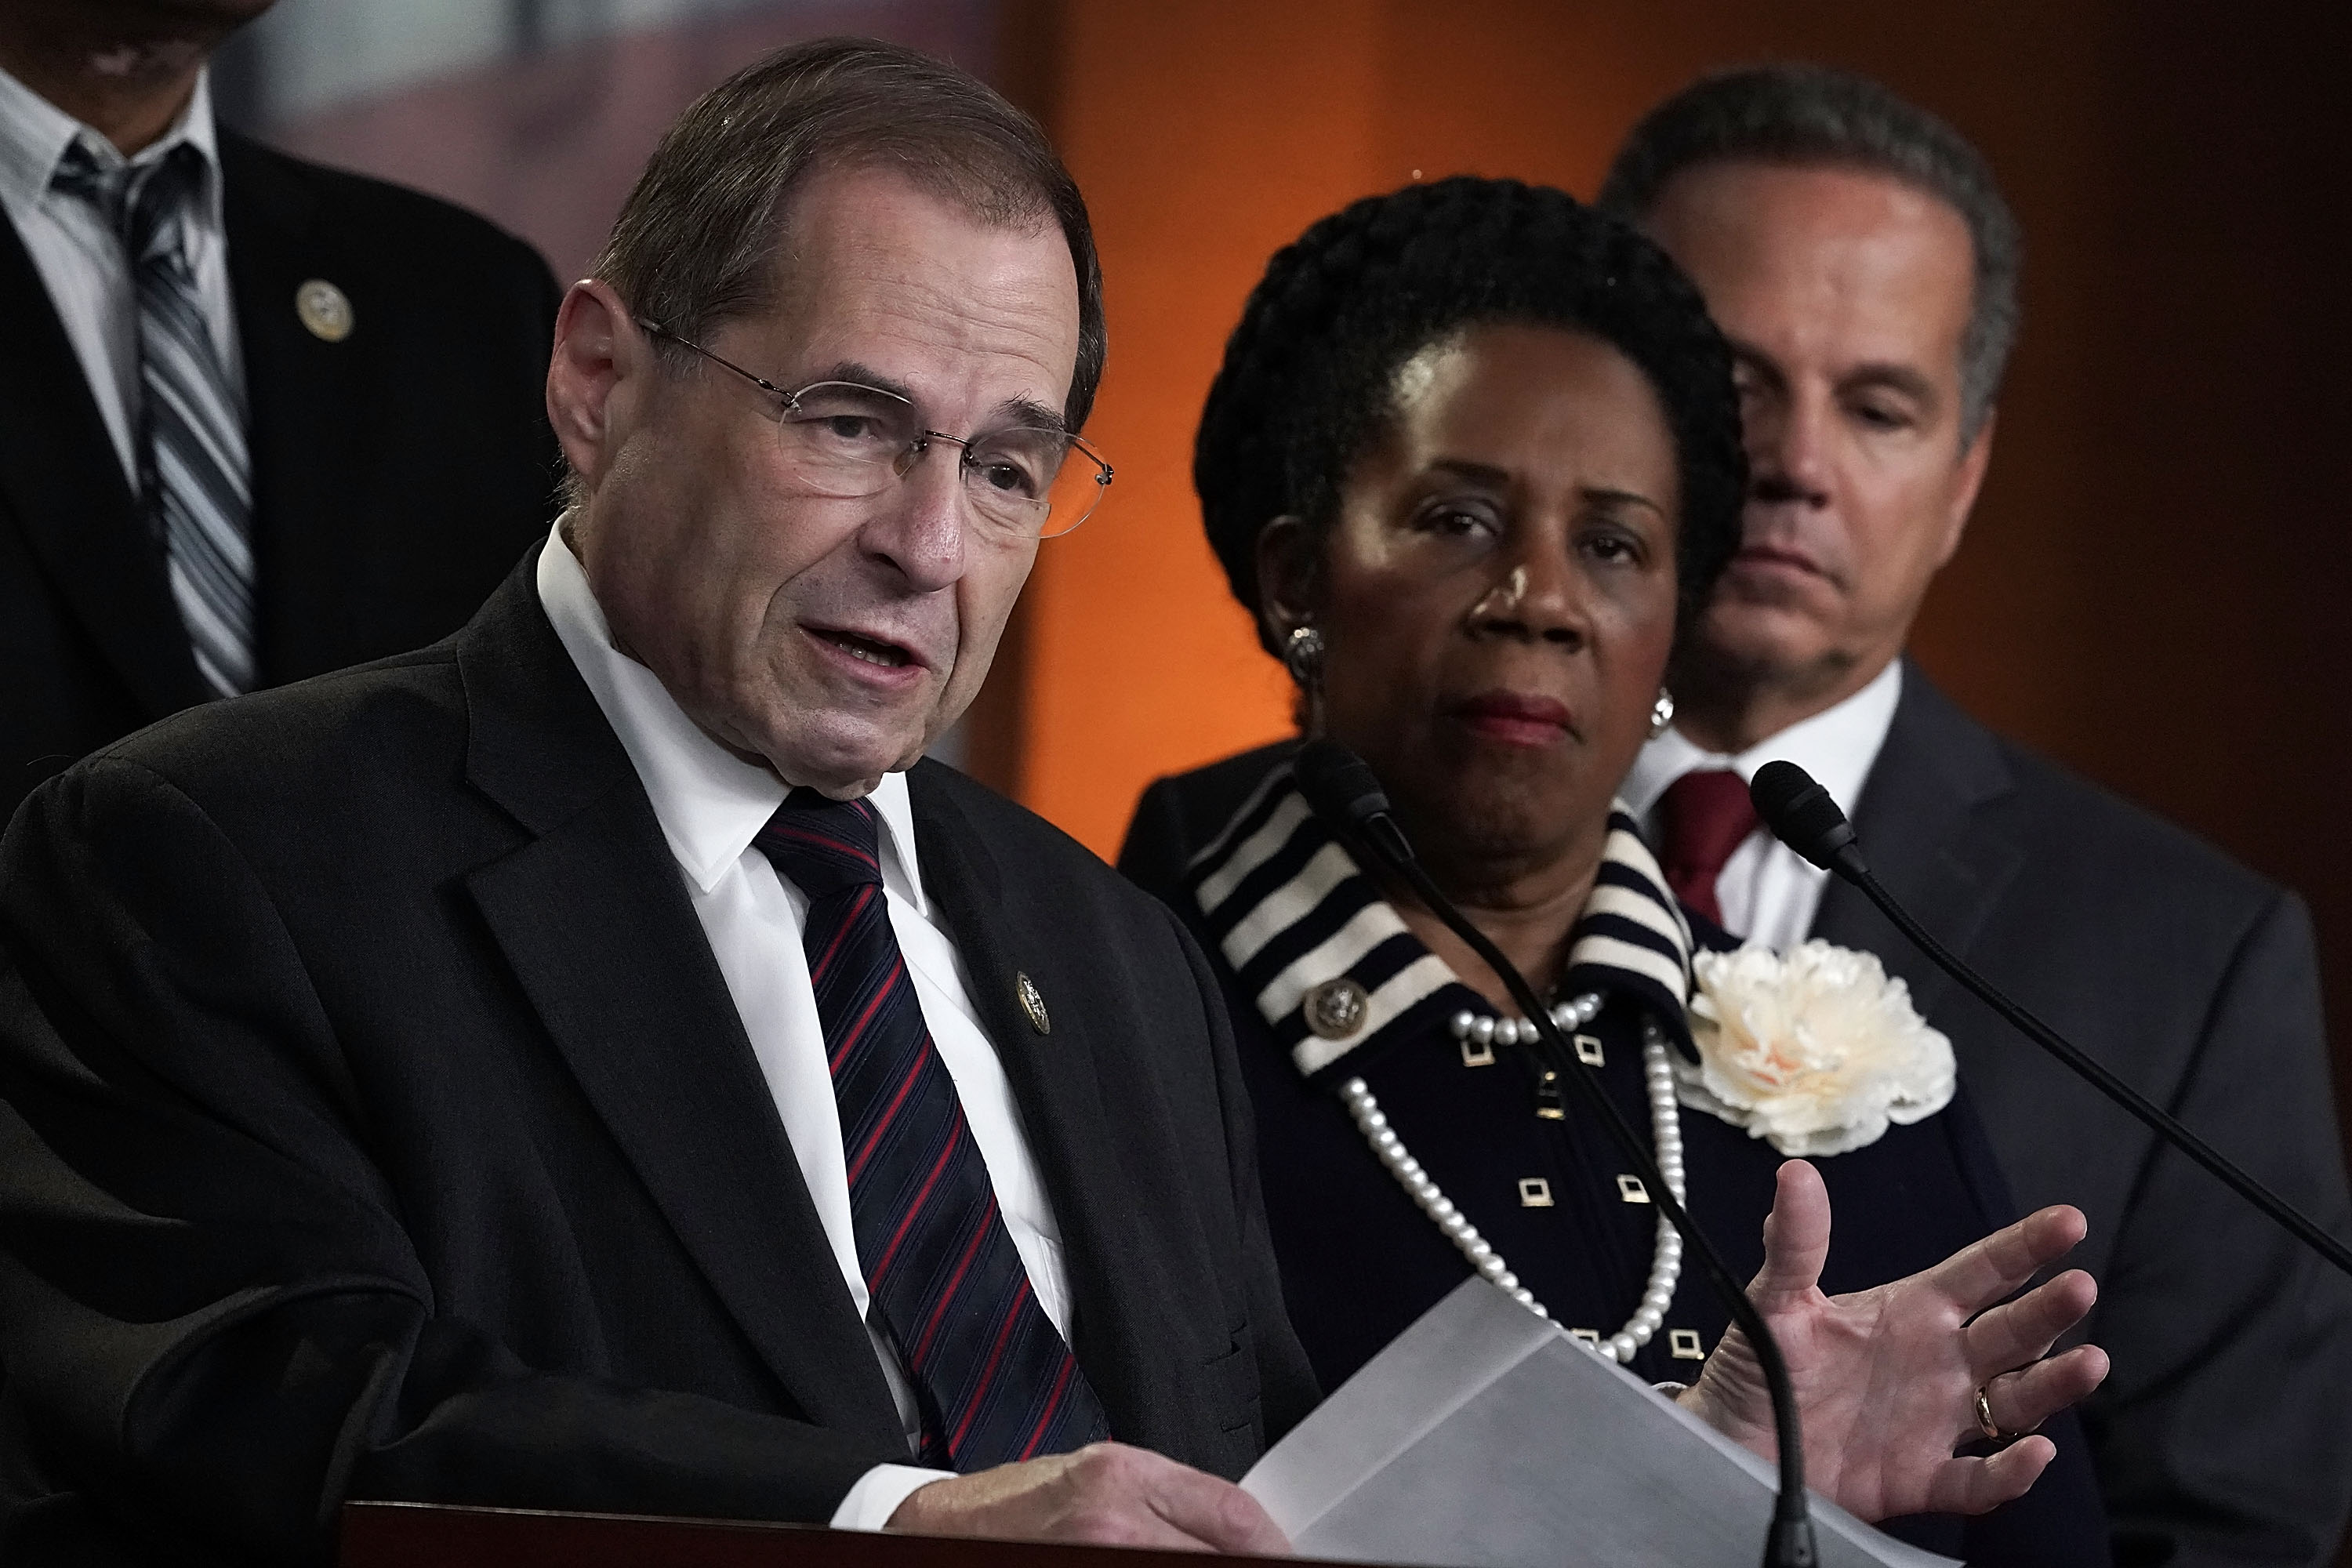 U.S. Rep. Jerrold Nadler (D-NY) (L) speaks as Rep. Sheila Jackson Lee (D-TX) (2nd L) and Rep. David Ciclline (D-RI) (R) listen during a news conference to denounce a meeting between the Justice Department and FBI officials and Rep. Devin Nunes (R-CA) and Rep. Trey Gowdy (R-SC) May 24, 2018 on Capitol Hill in Washington, DC. The White House is arranging two separate meetings, one for House Republicans only and one for bipartisan House and Senate leaders known as the Gang of Eight, to review classified information related to the Russia investigation including the informant the FBI had sent to talk to Trump Campaign advisers